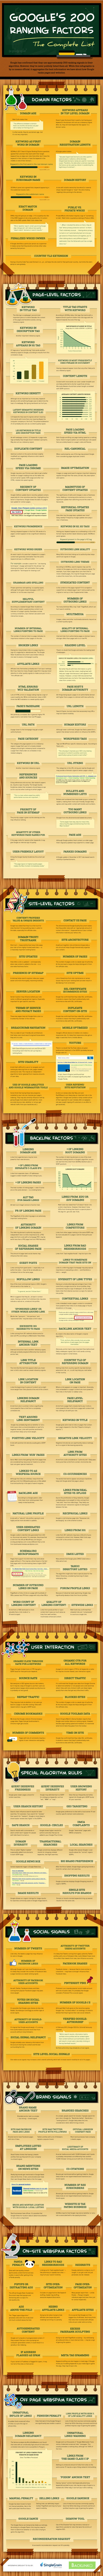 Infographic: 200 Ranking Factors in the Google Algorithm - Backlinko and SingleGrain | The Marketing Technology Alert | Scoop.it